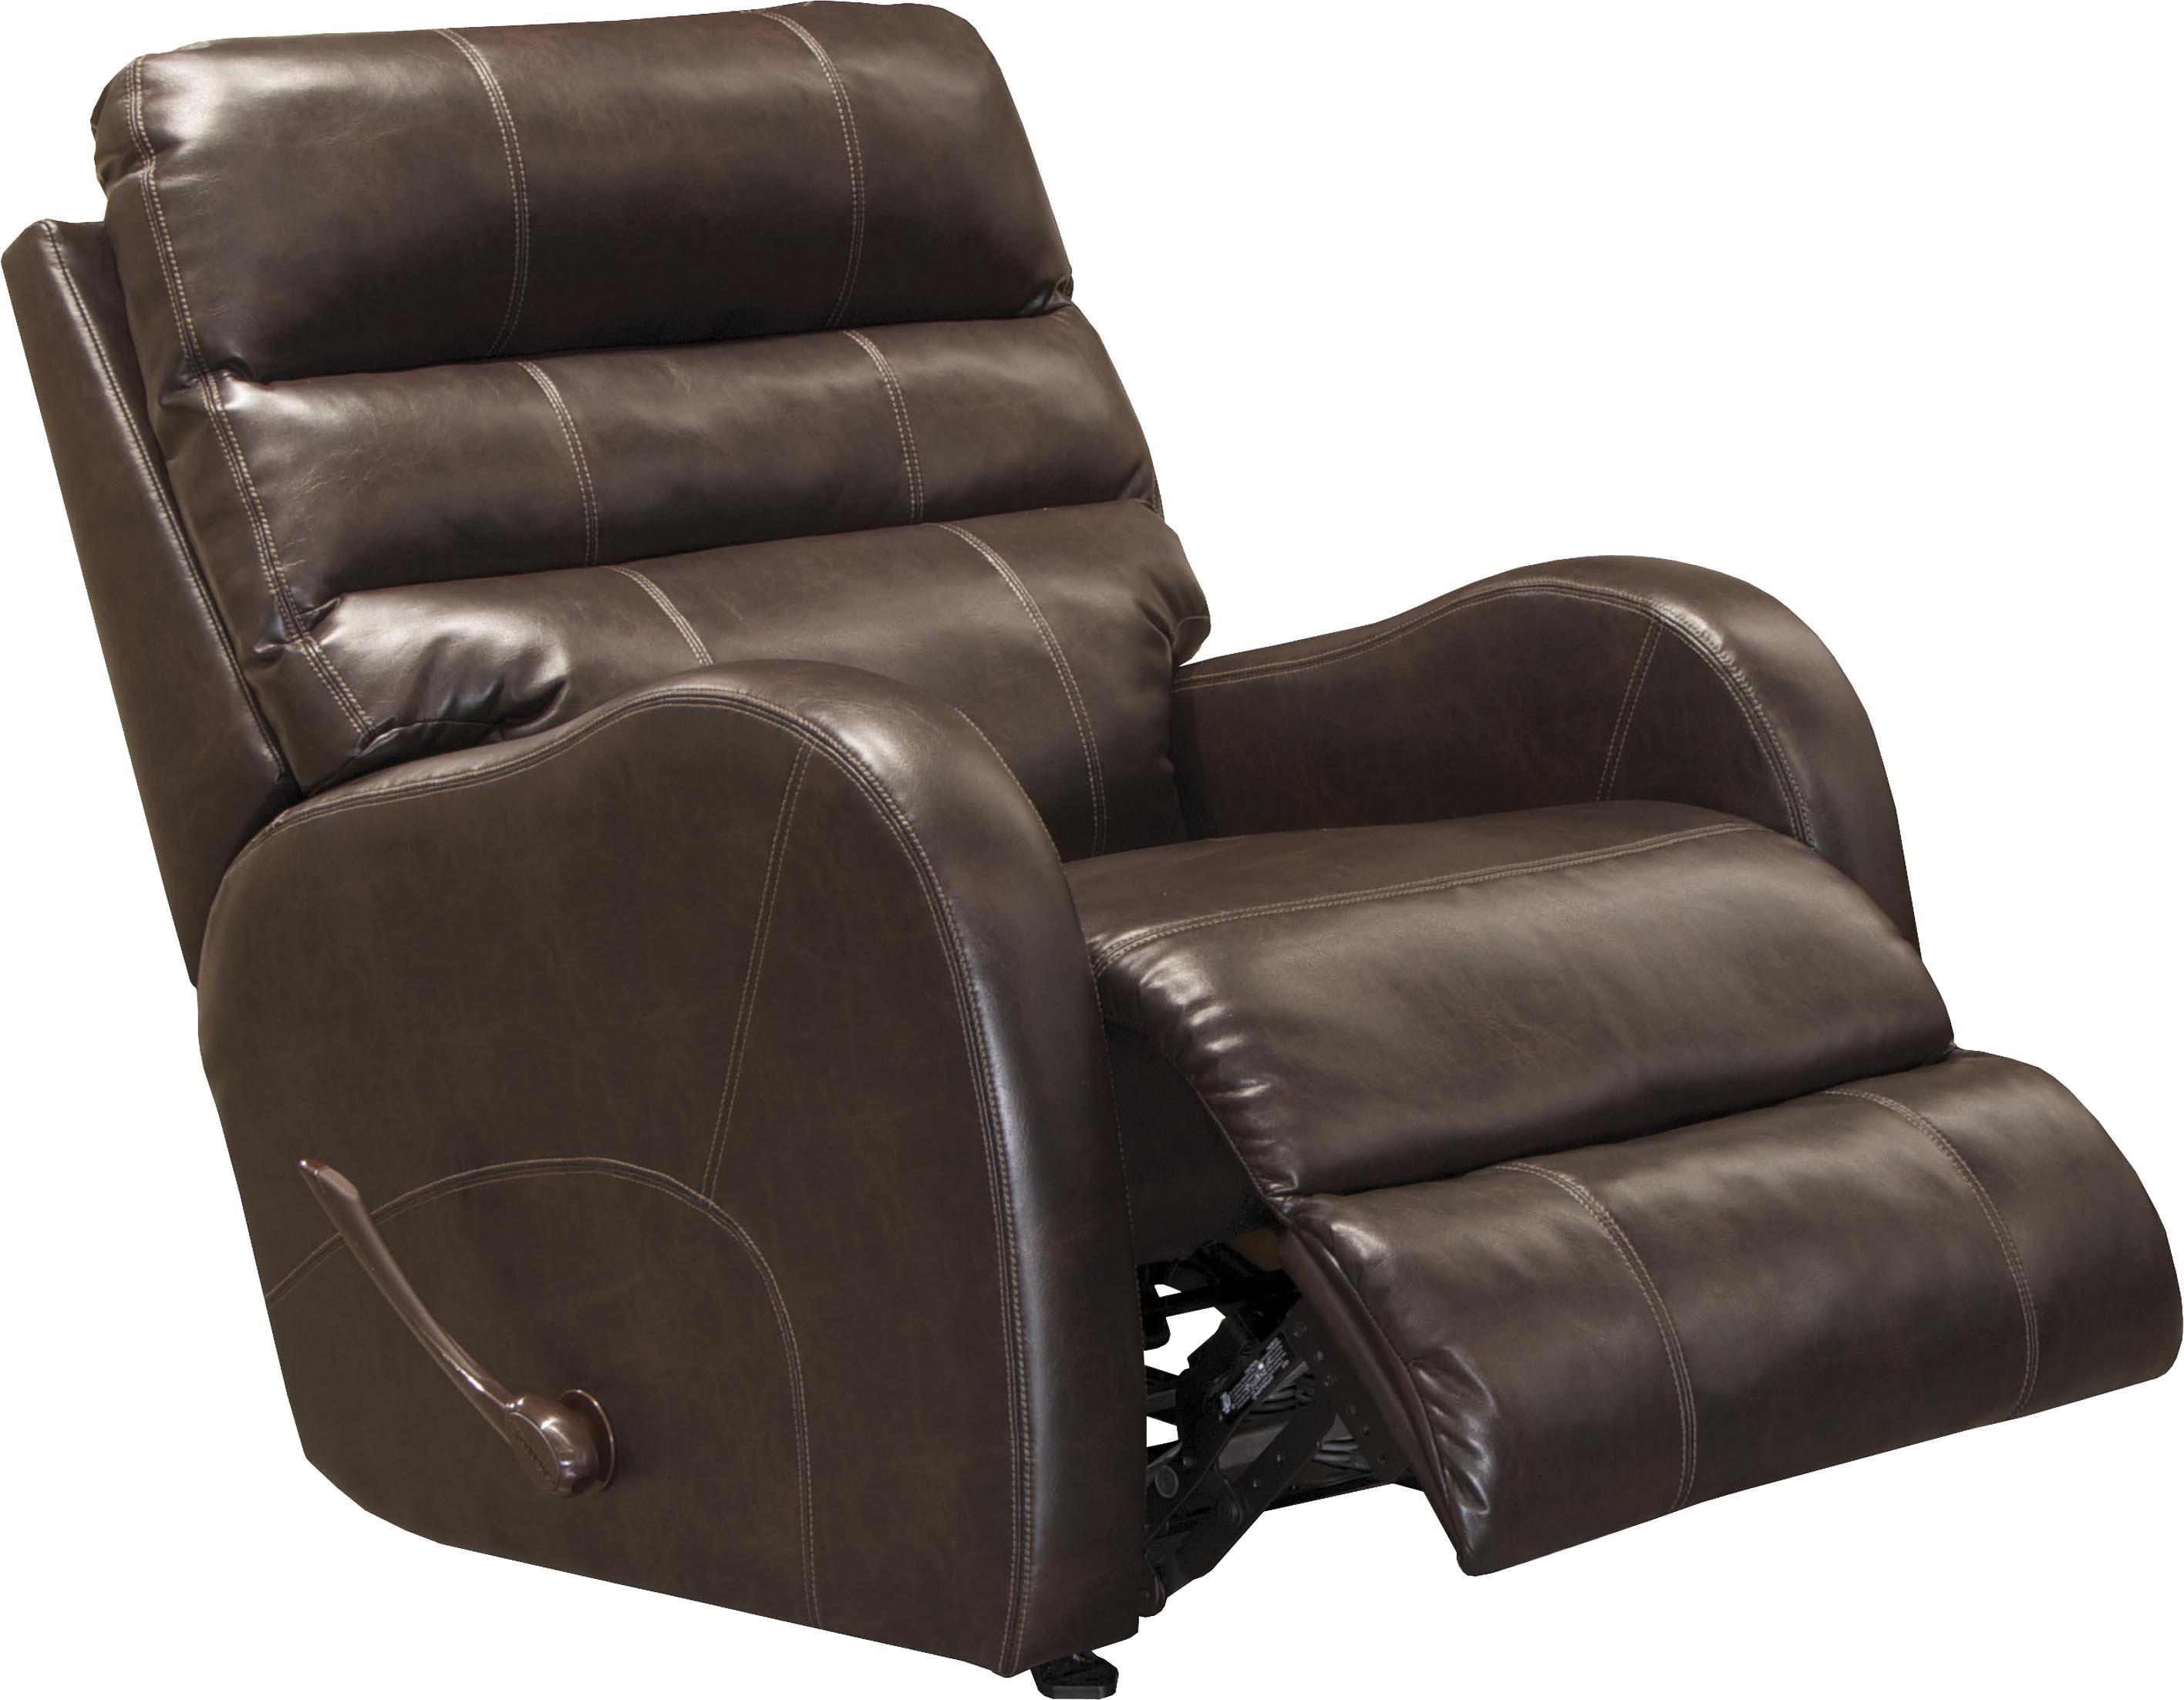 Searcy Power Recliner by Catnapper at Bullard Furniture